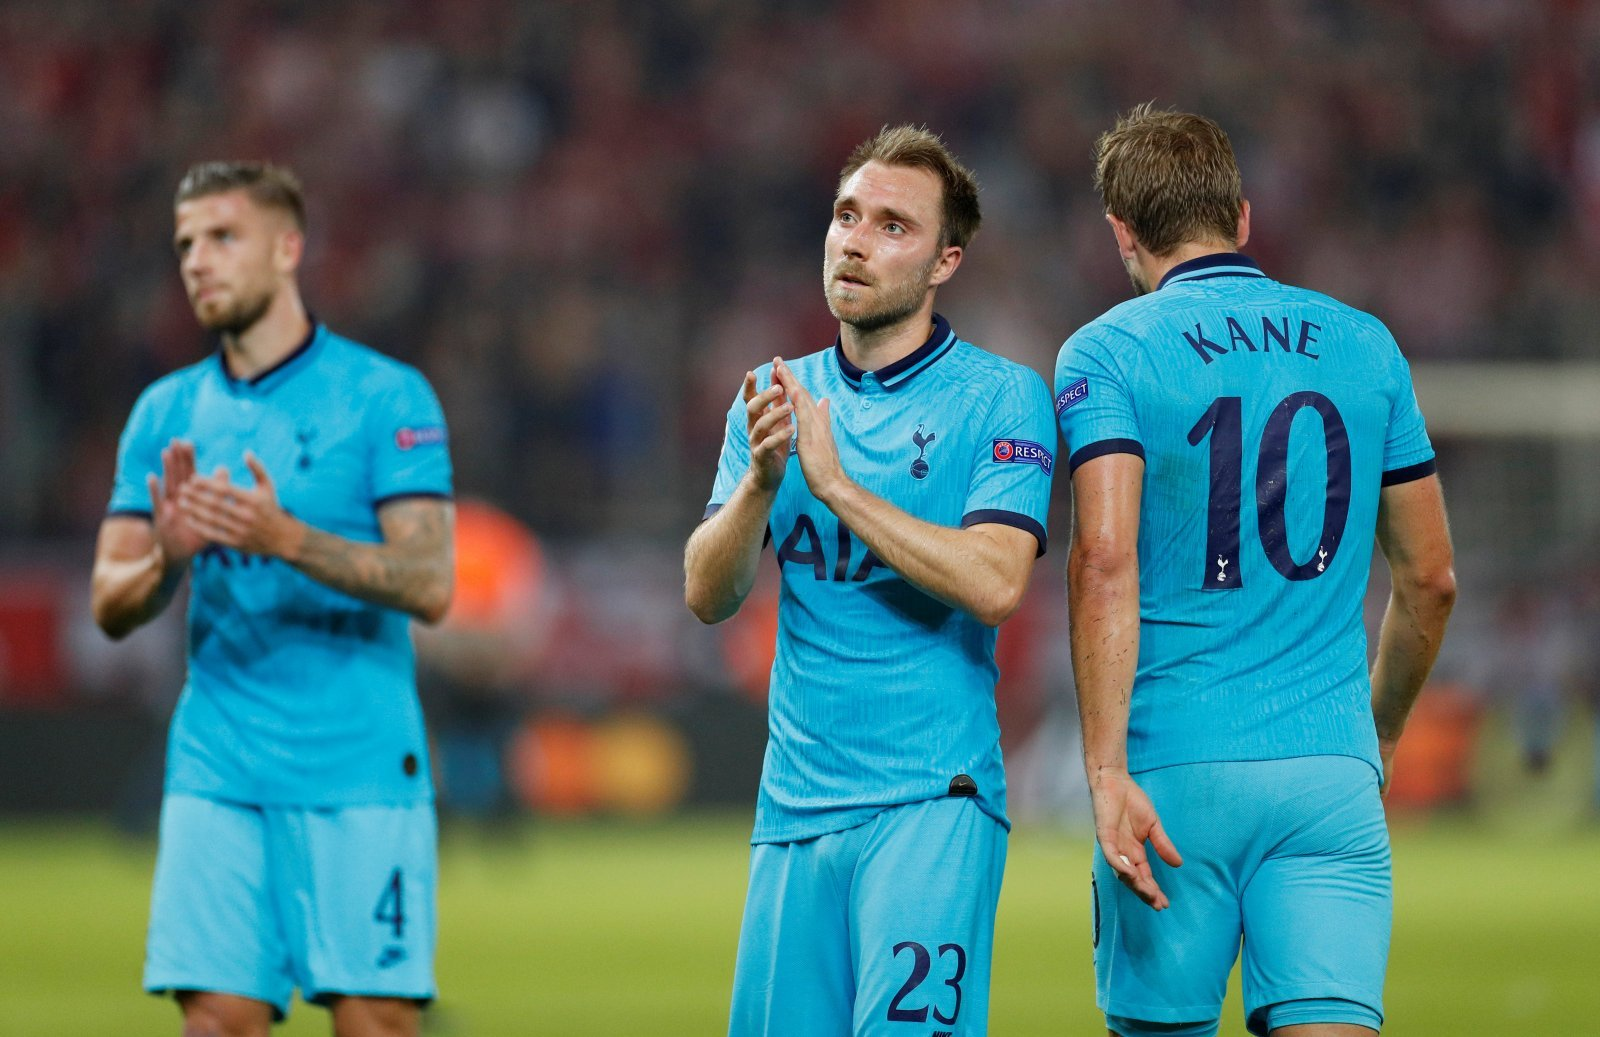 Tottenham Hotspur: These Spurs fans weren't happy with Christian Eriksen scoring in UCL fixture